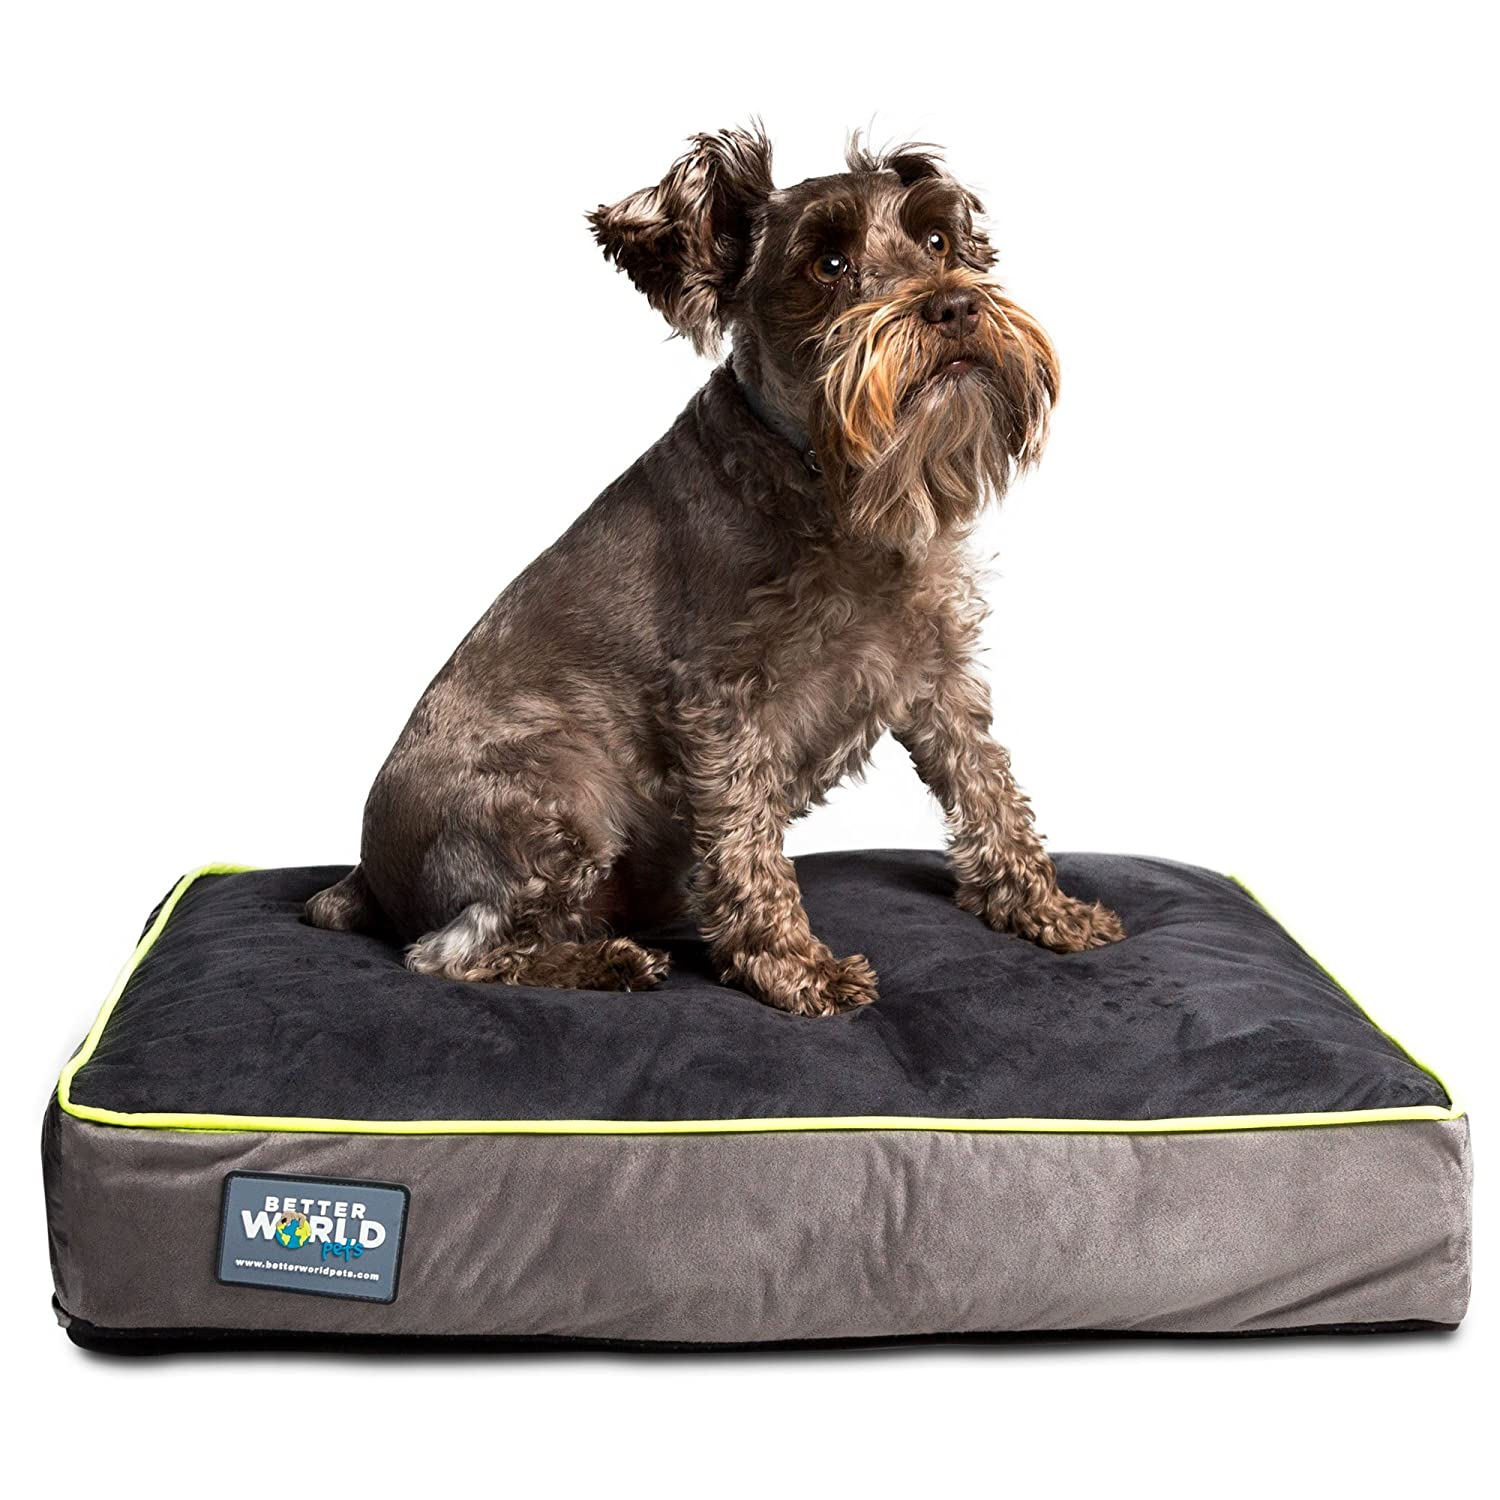 amazoncom  better world pets inch thick waterproof orthopedic  - amazoncom  better world pets inch thick waterproof orthopedic memoryfoam dog bed with  gsm removable washable cover small ( x  x ) ( dogs